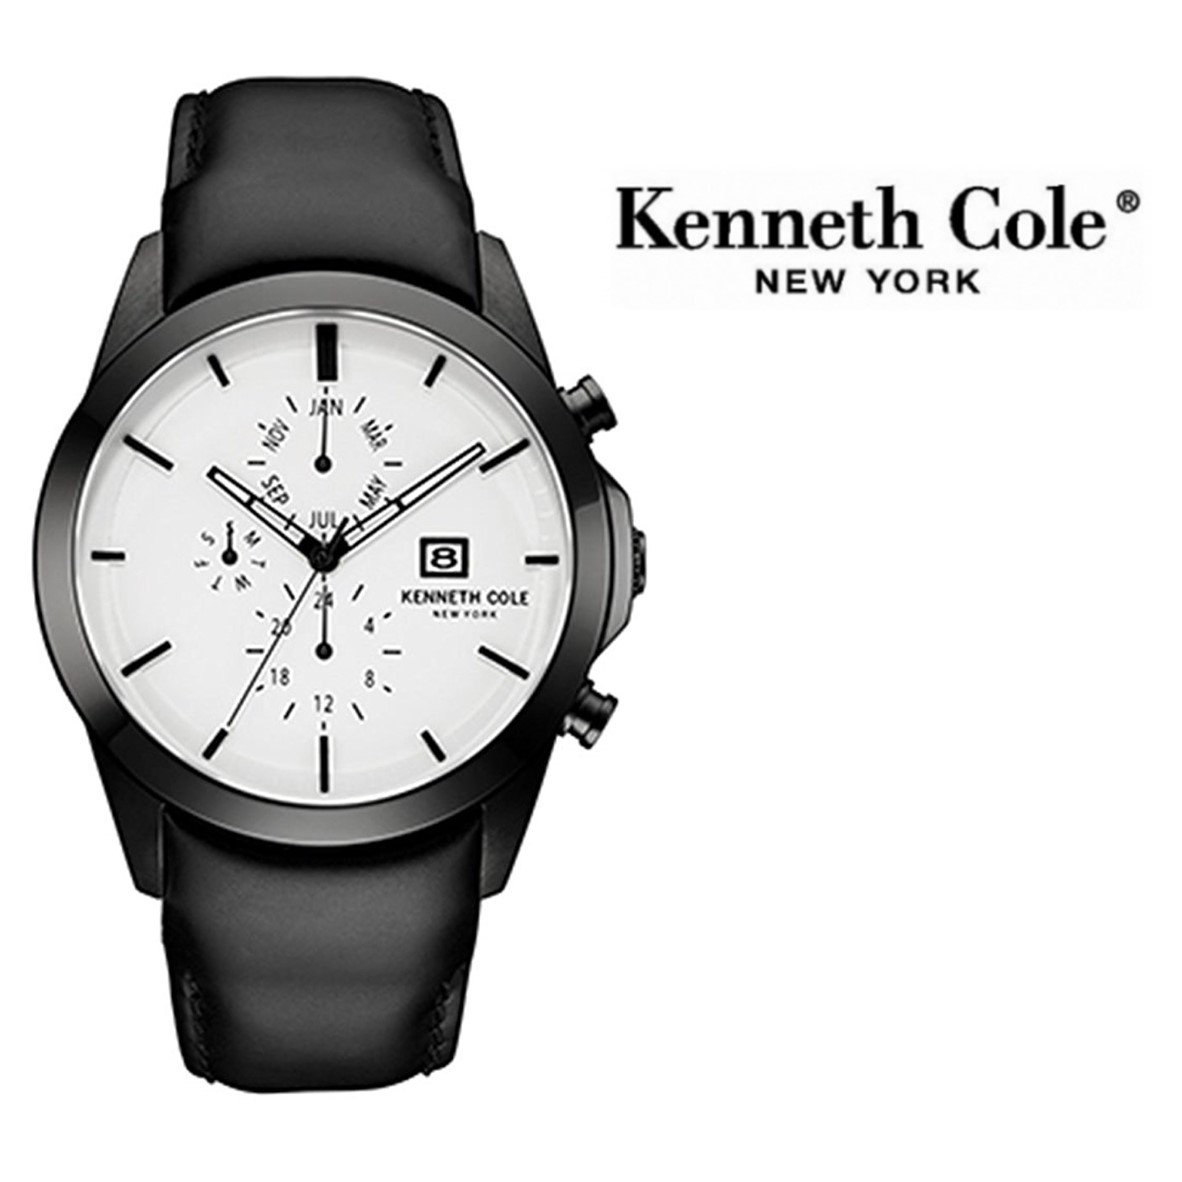 Cole® Kenneth Watch York Analog Casual New pGLzSUMVq